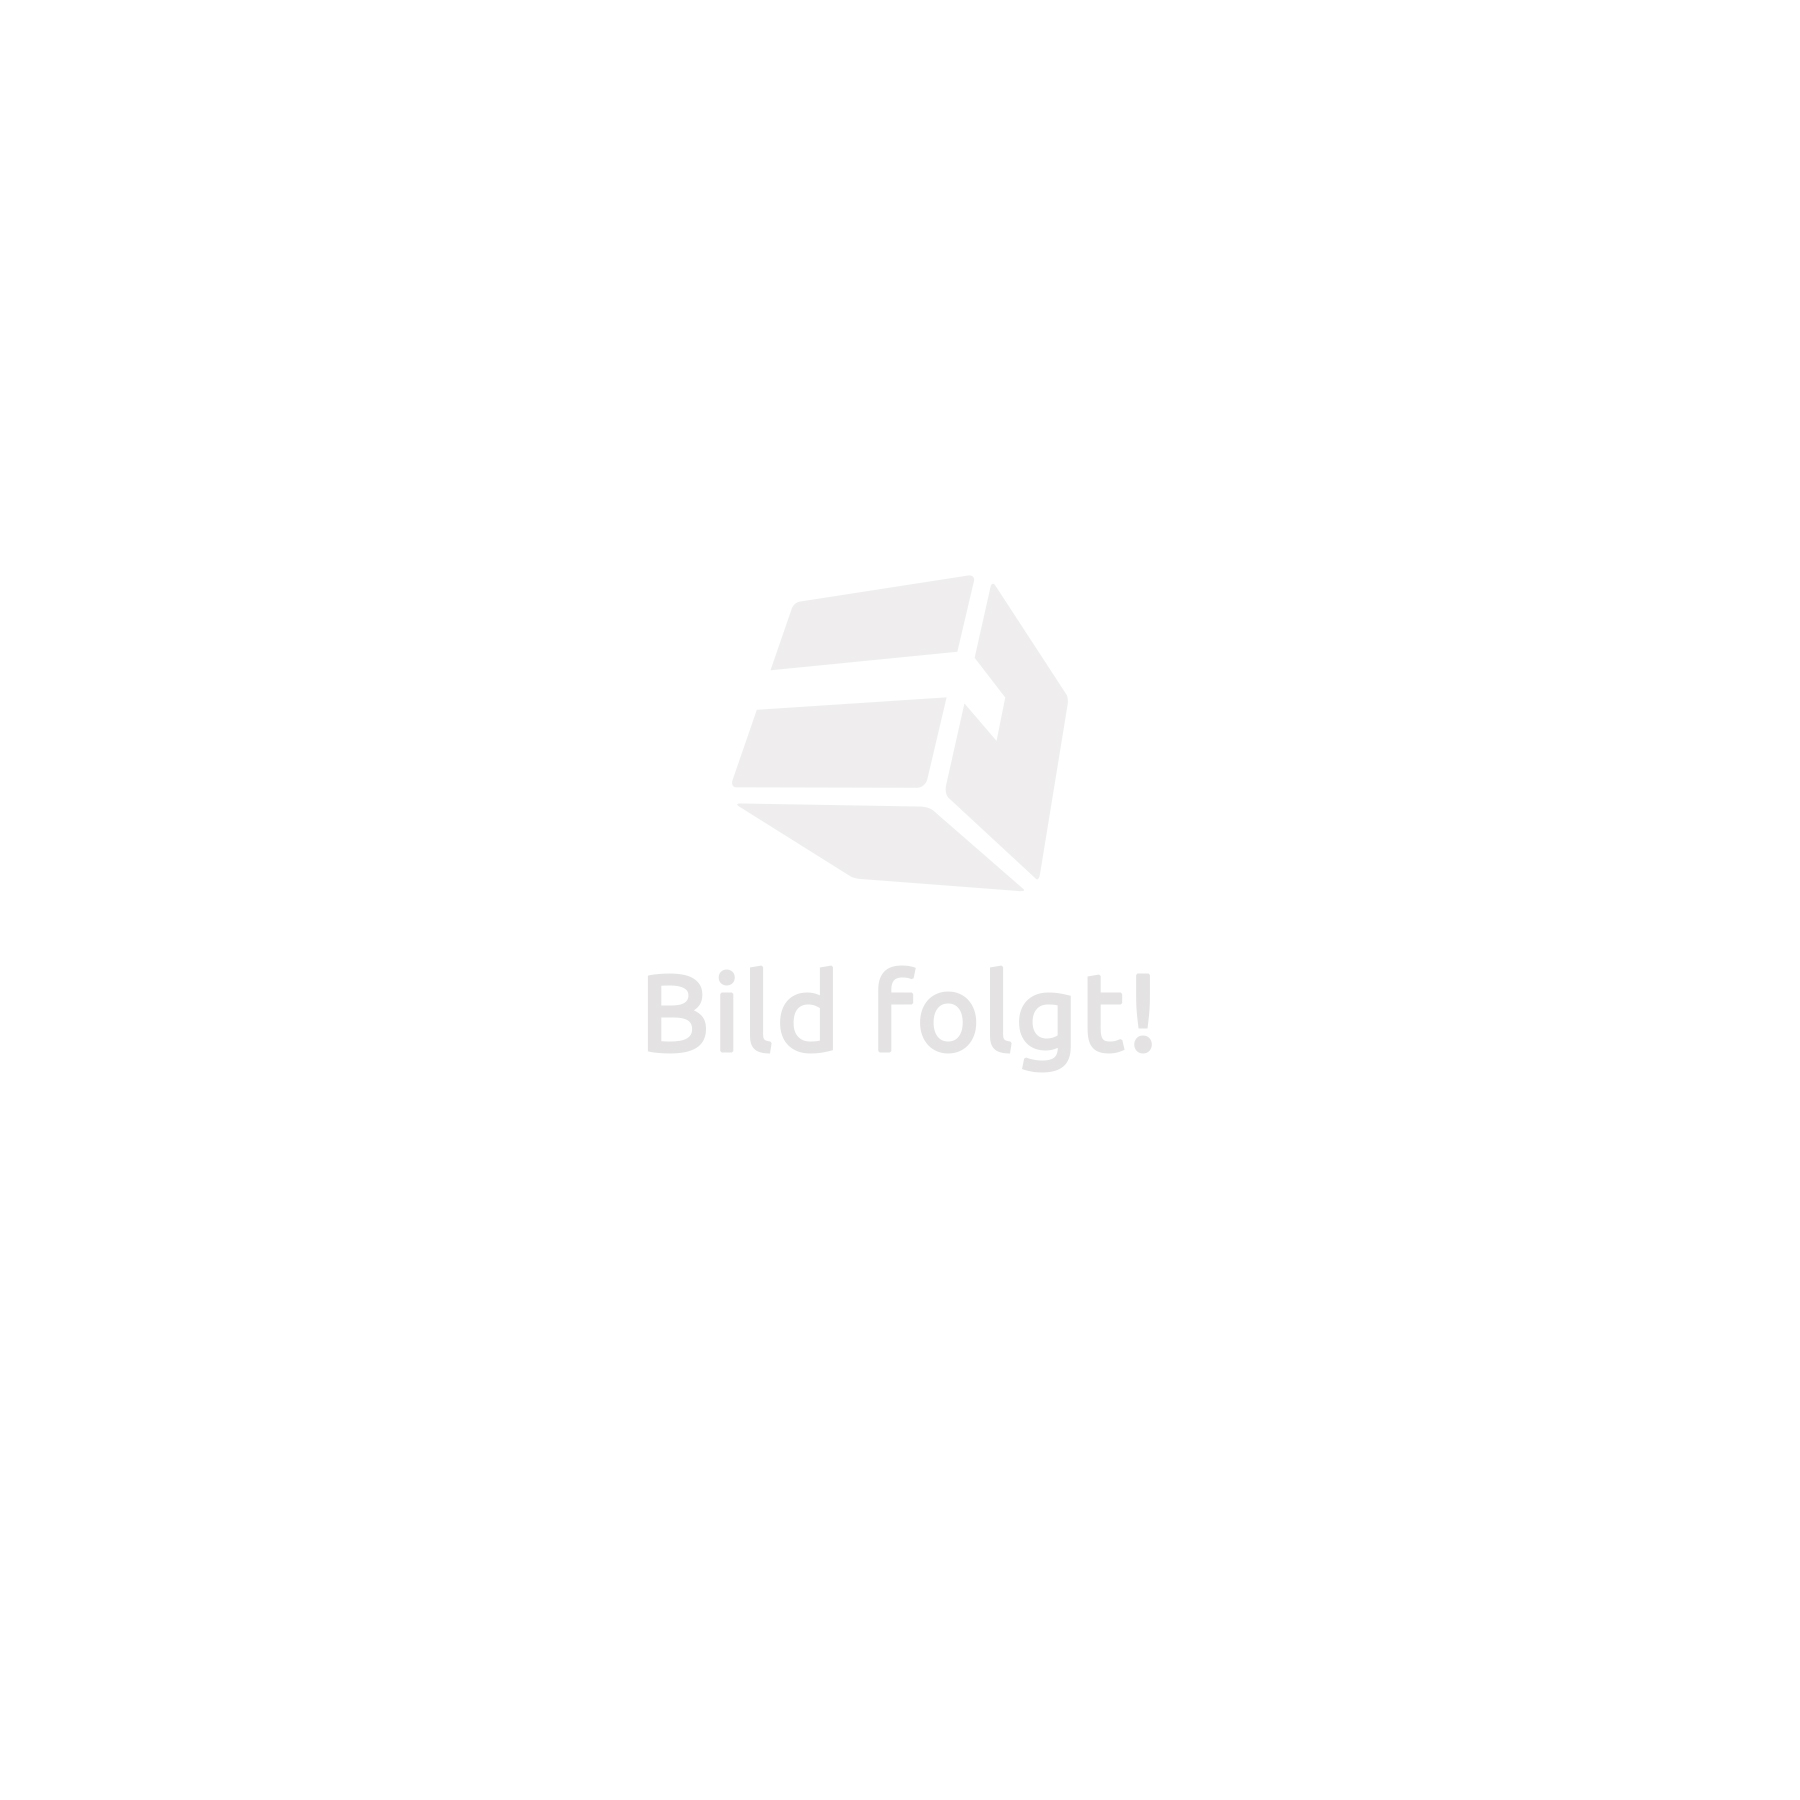 2 in 1 Crosstrainer & Heimtrainer mit LCD Display